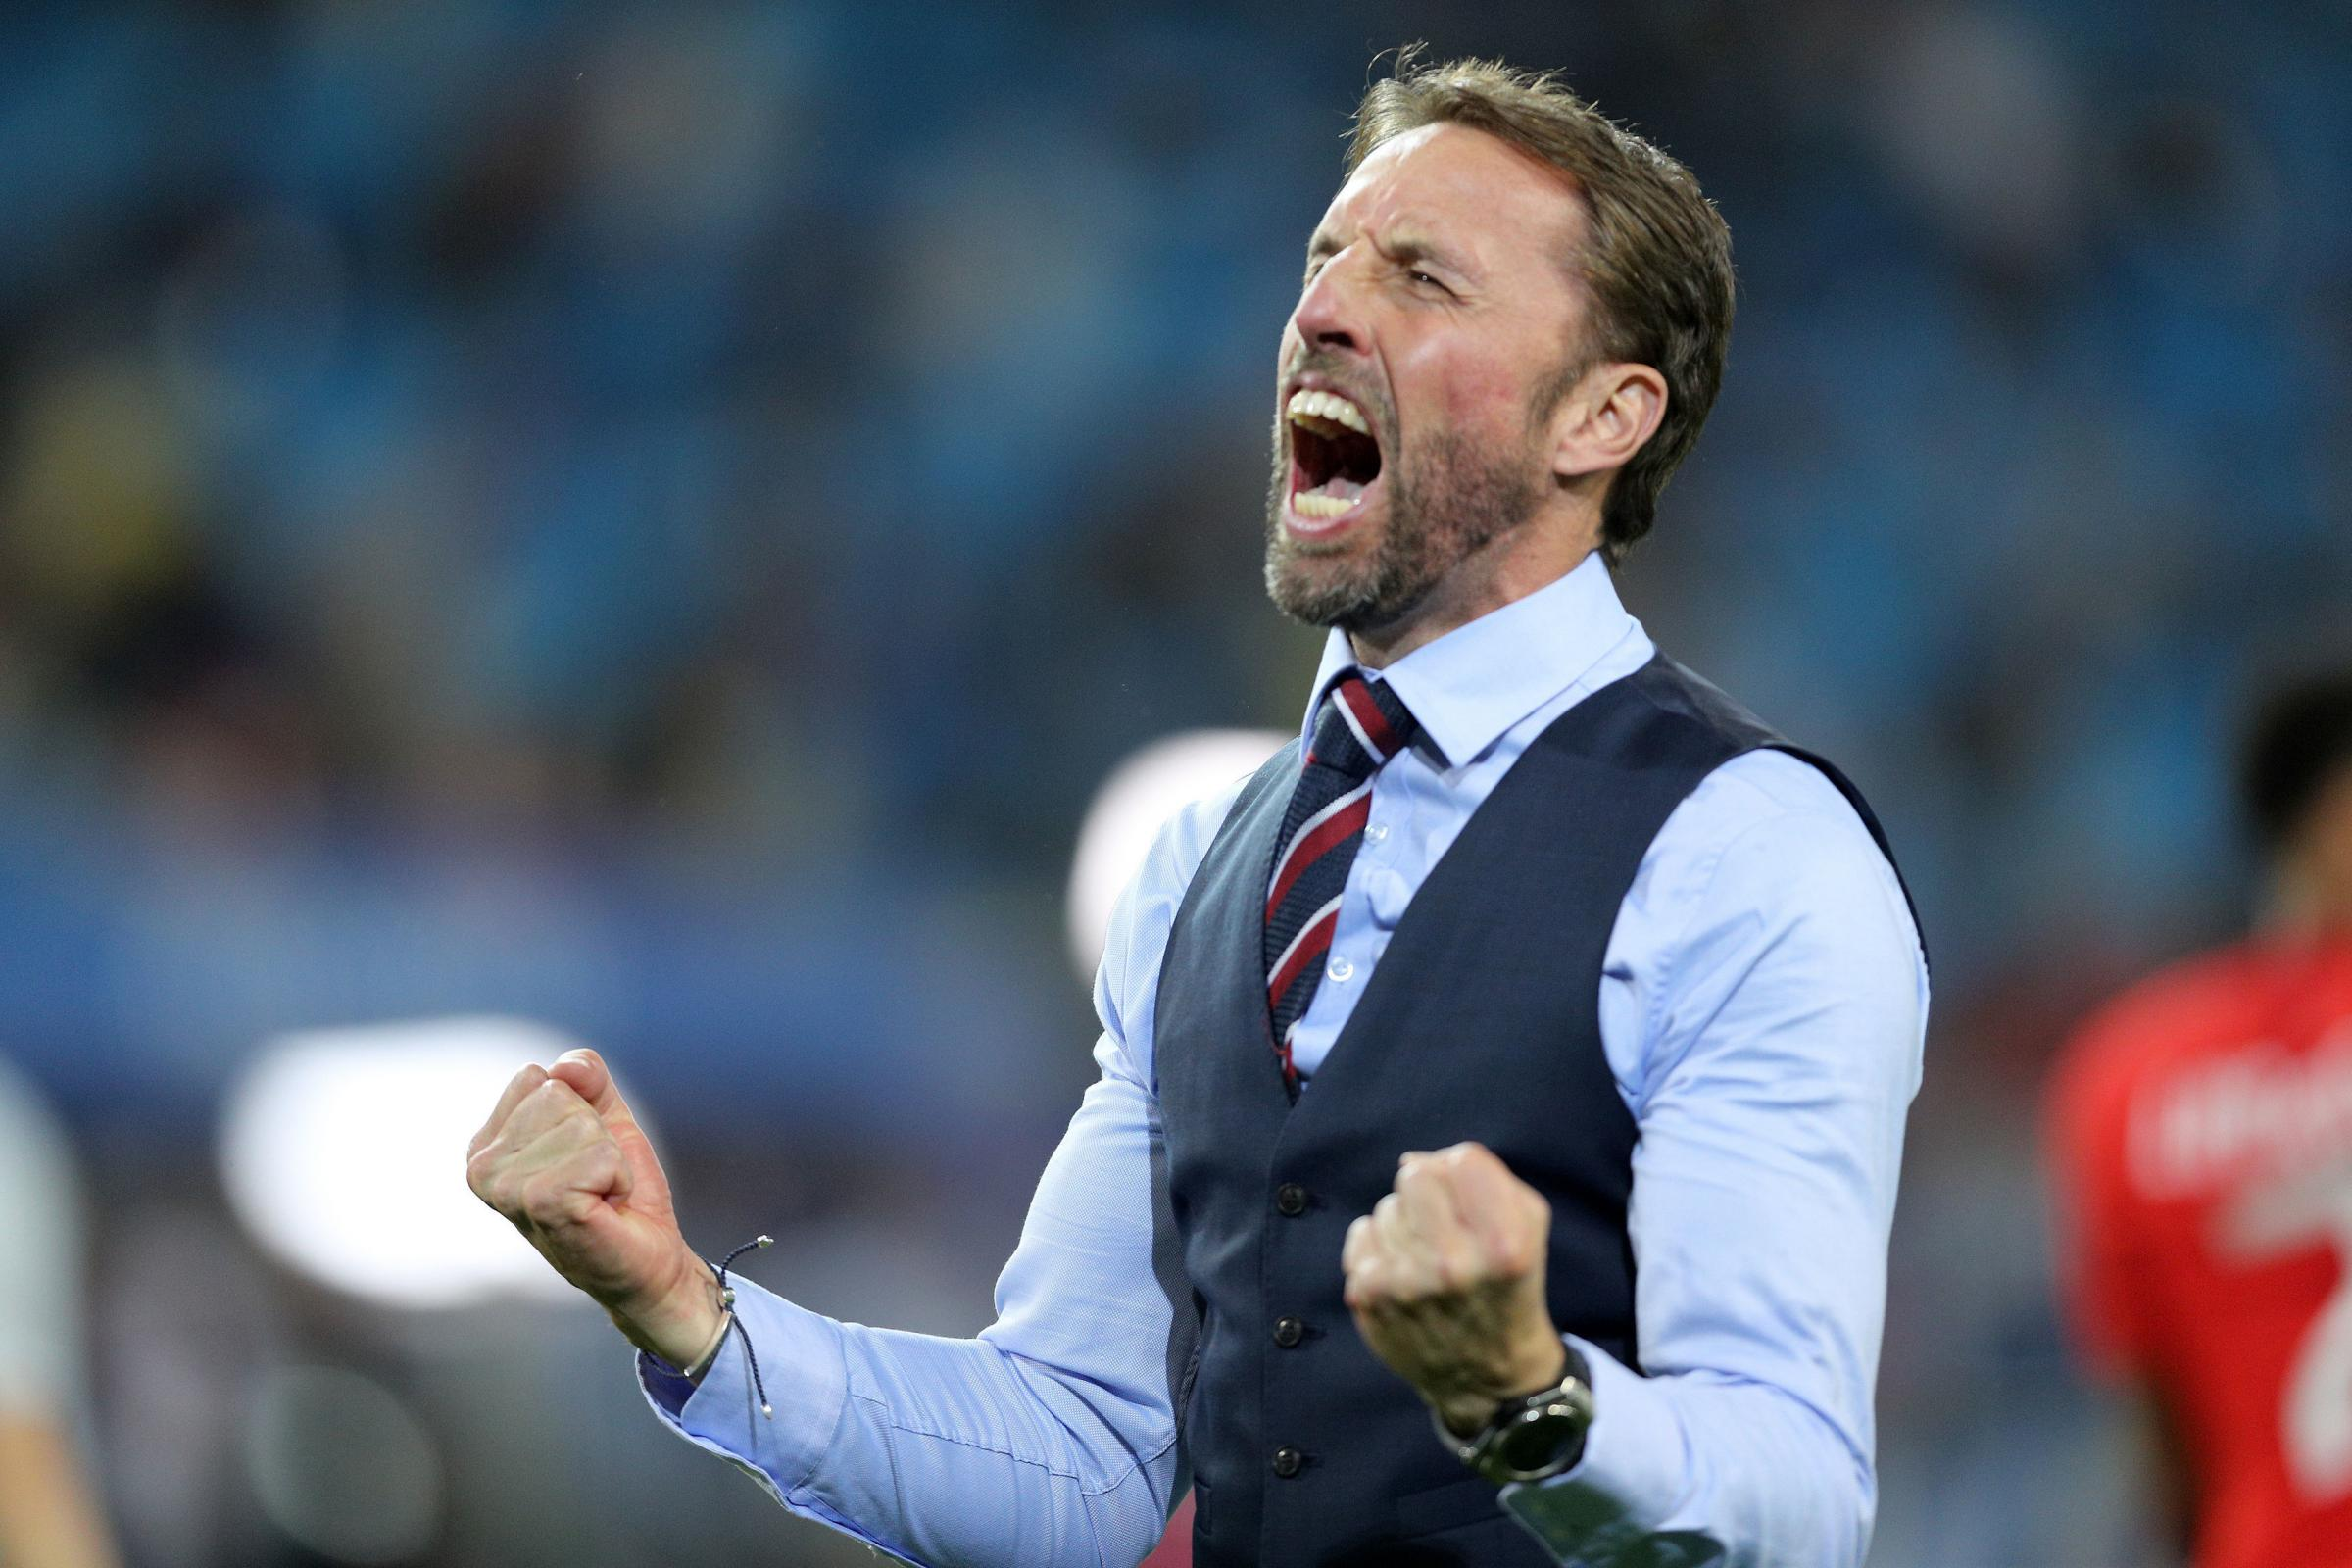 England manager Gareth Southgate was celebrating England's win over Colombia – could he and the country also be celebrating come July 15? Photo: PA